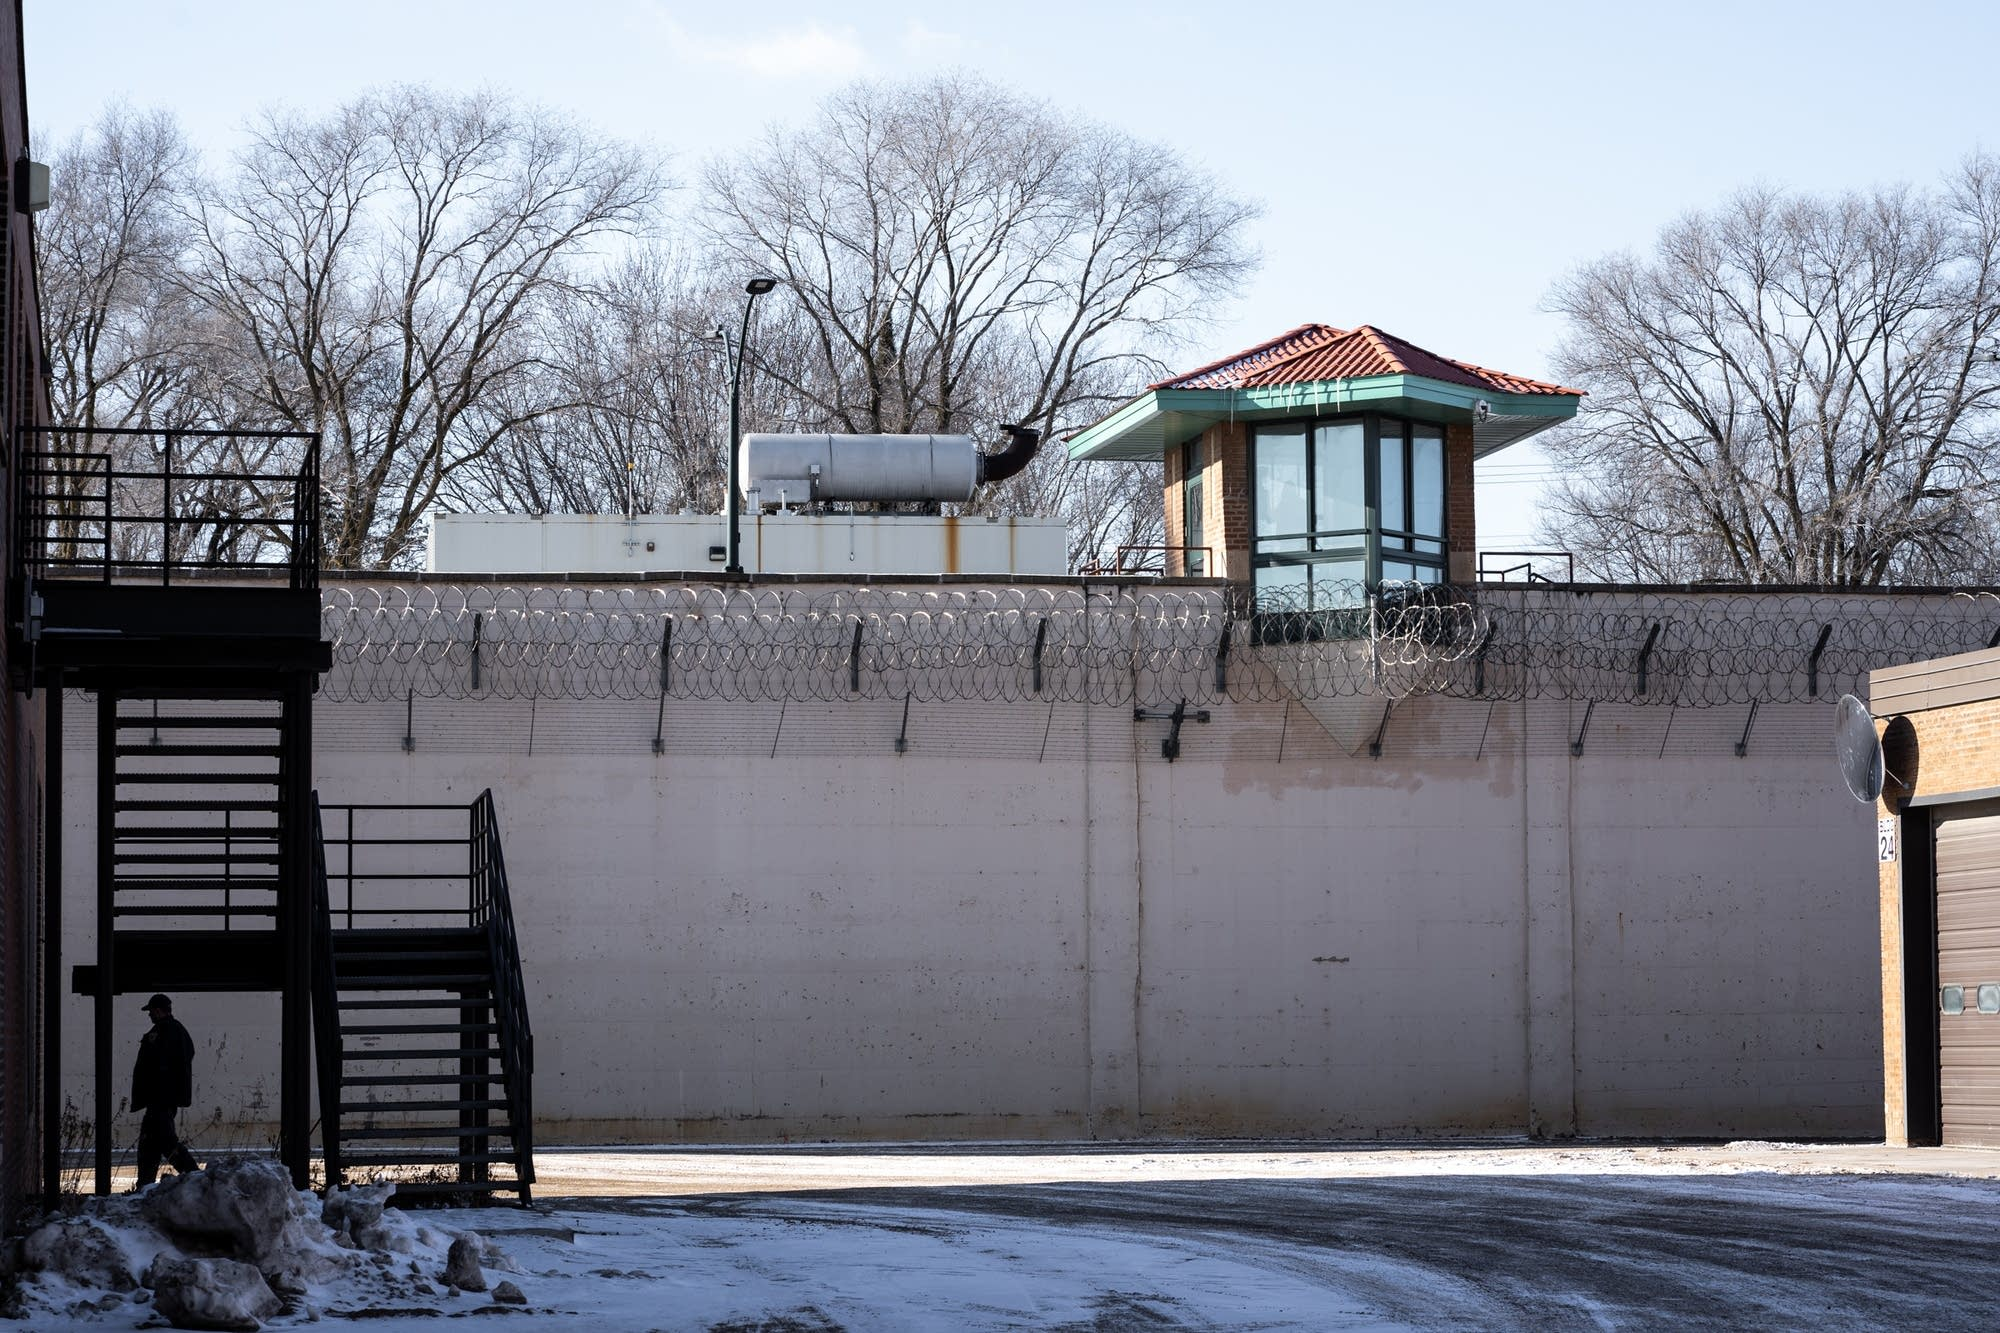 A corrections officer enters a building inside of Stillwater prison.